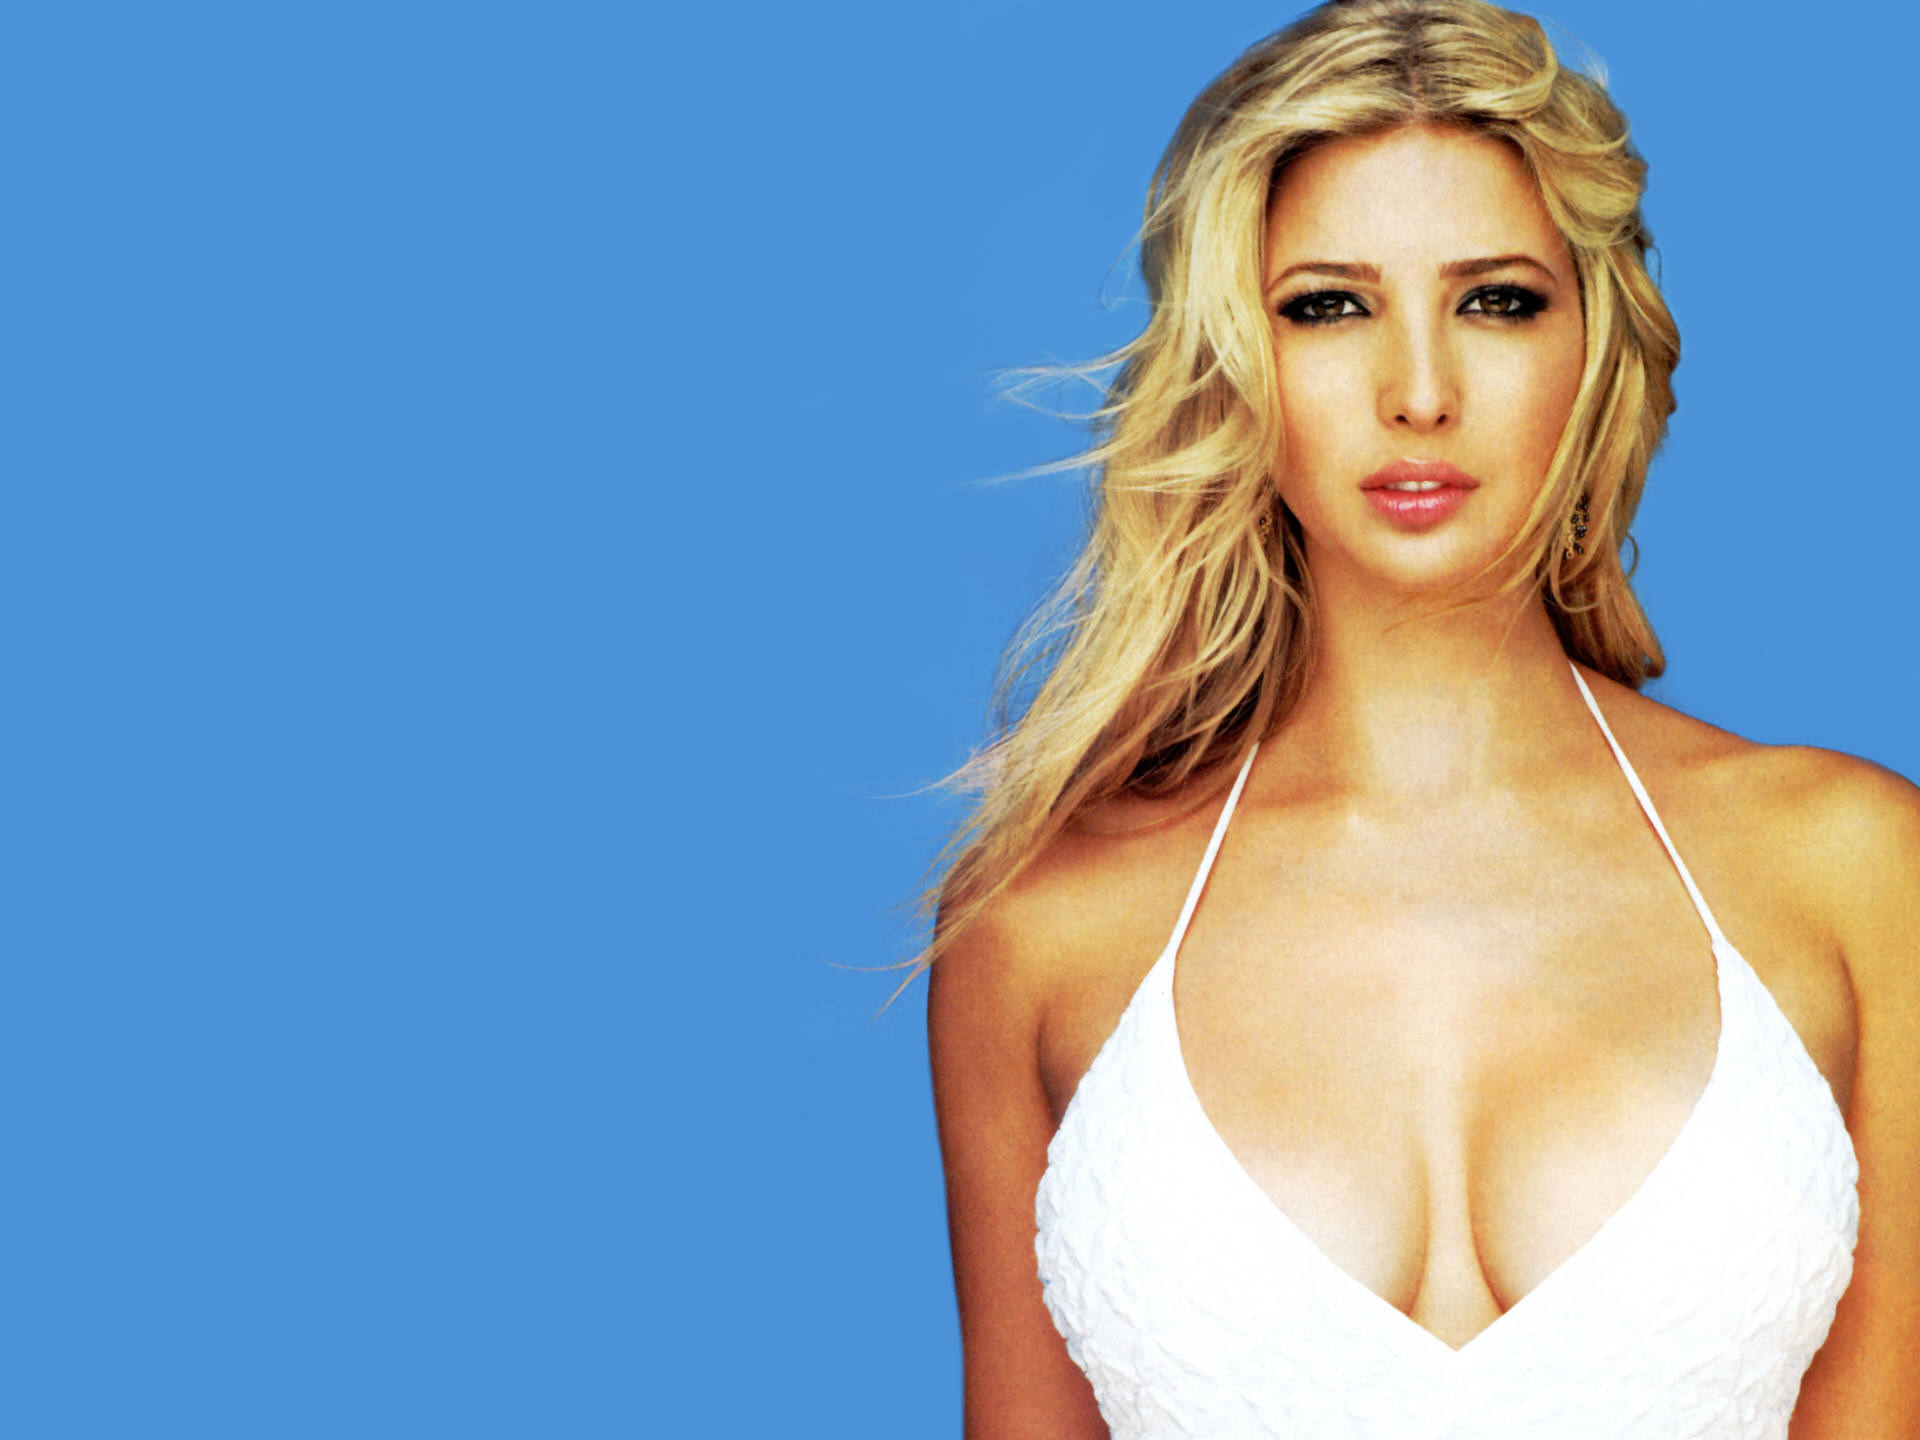 Hottest Ivanka Trump Photos - Ranker